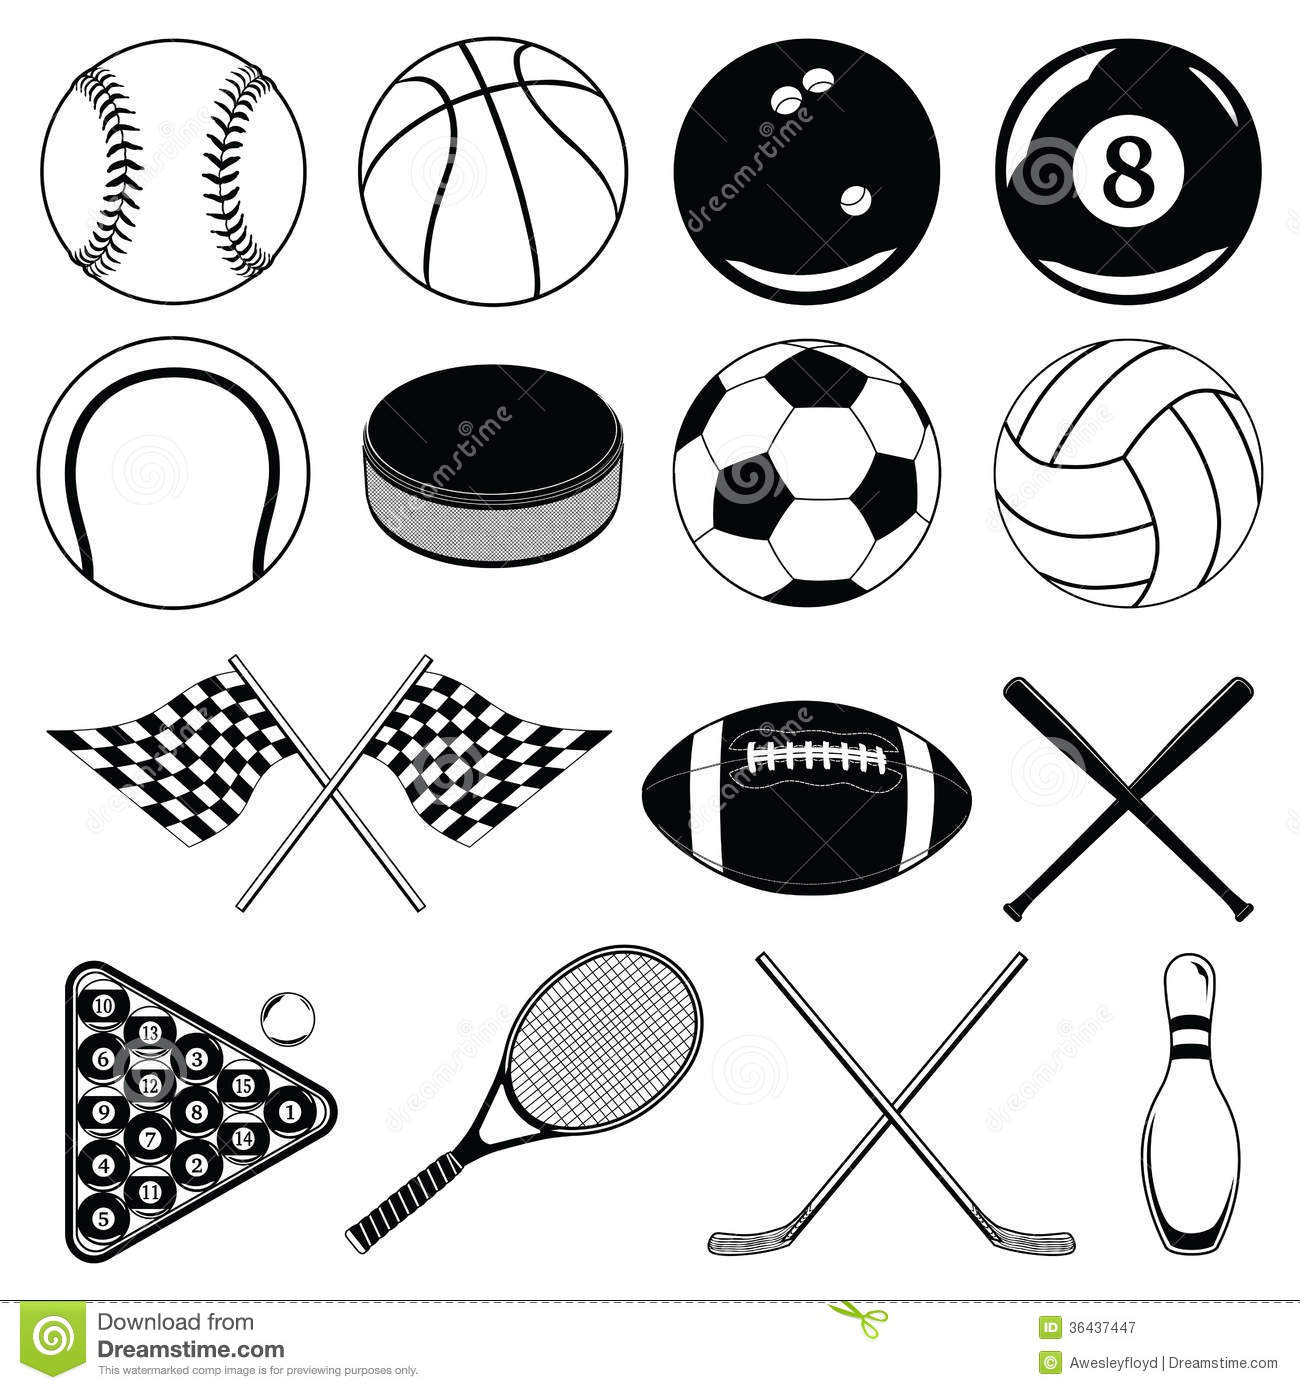 sports balls and other items stock vector illustration of equipment bats 36437447. Black Bedroom Furniture Sets. Home Design Ideas